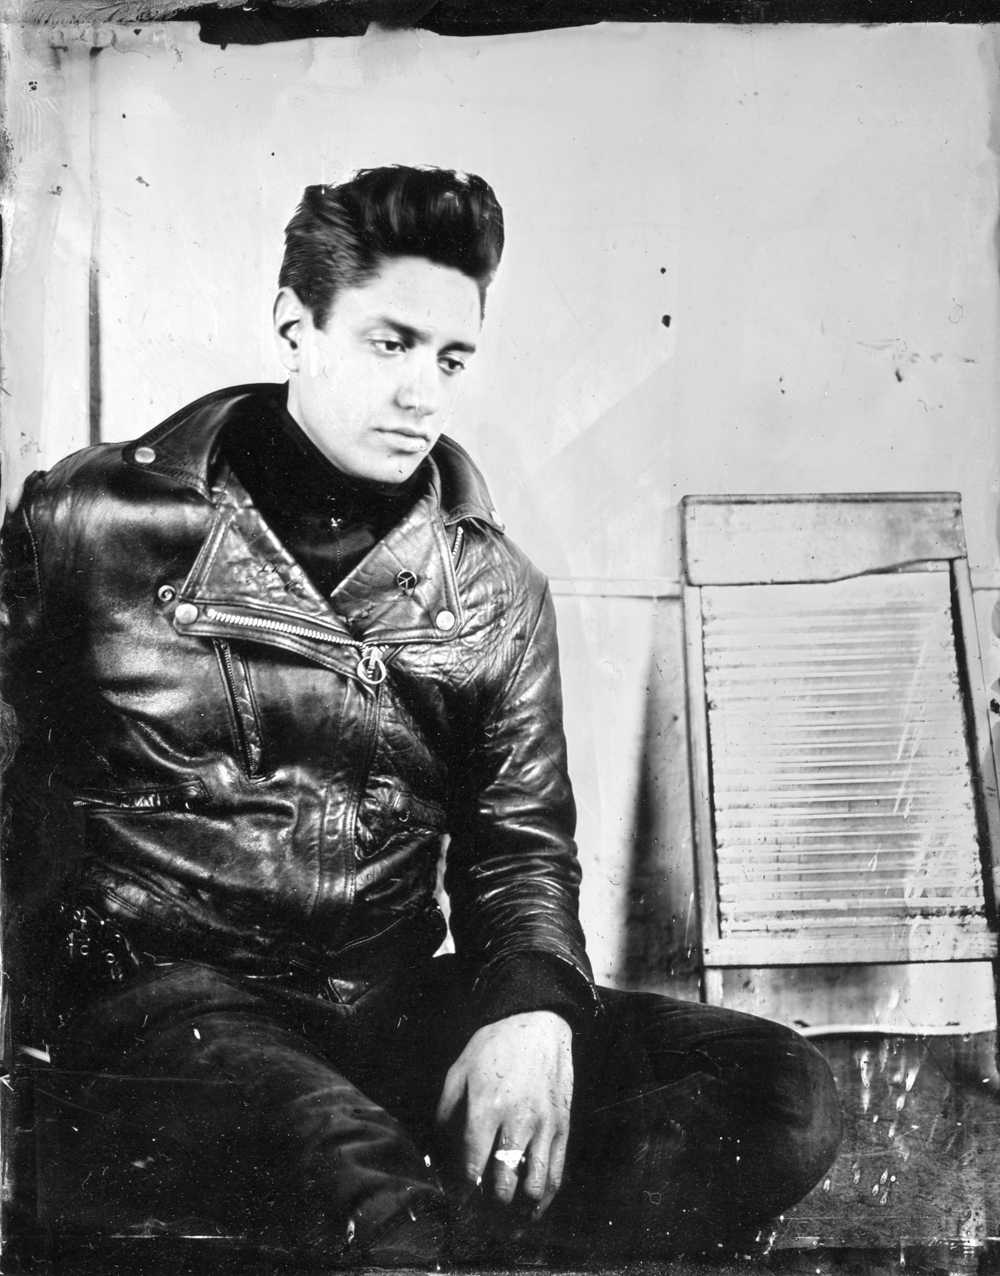 Leo Lewis from EXTENDED GAZE